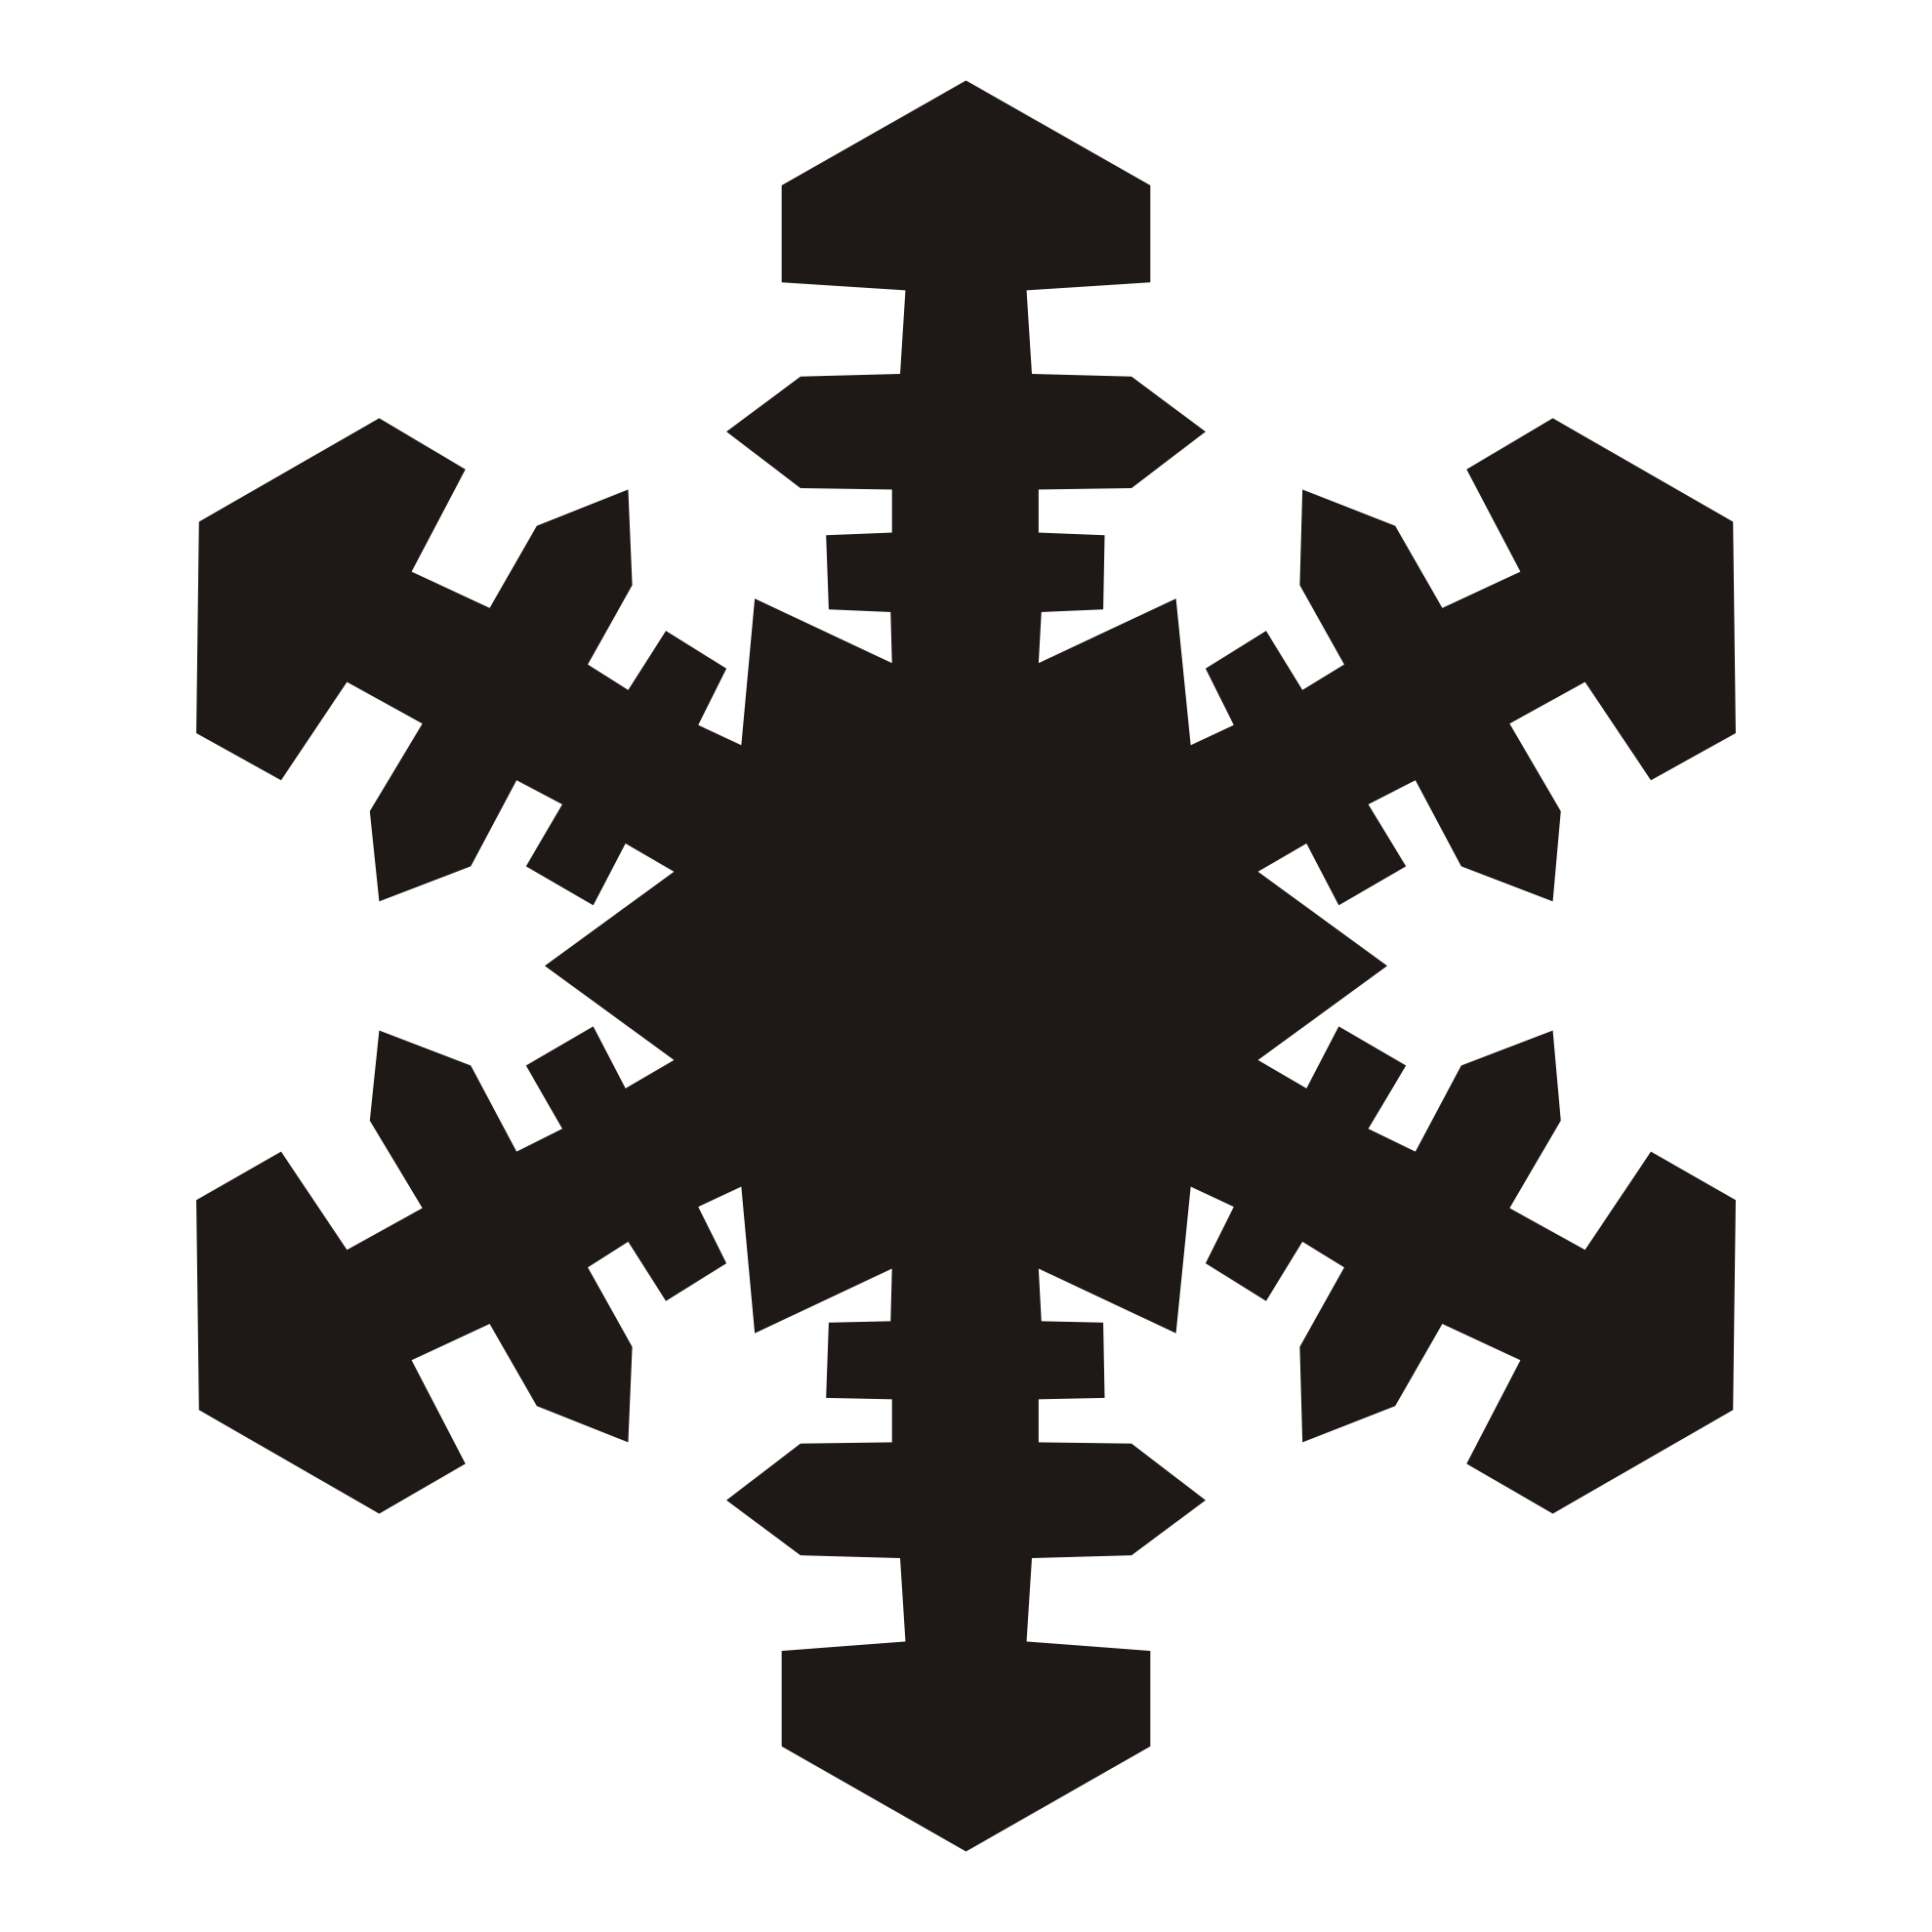 Free Snowflake Silhouette Cliparts, Download Free Clip Art.